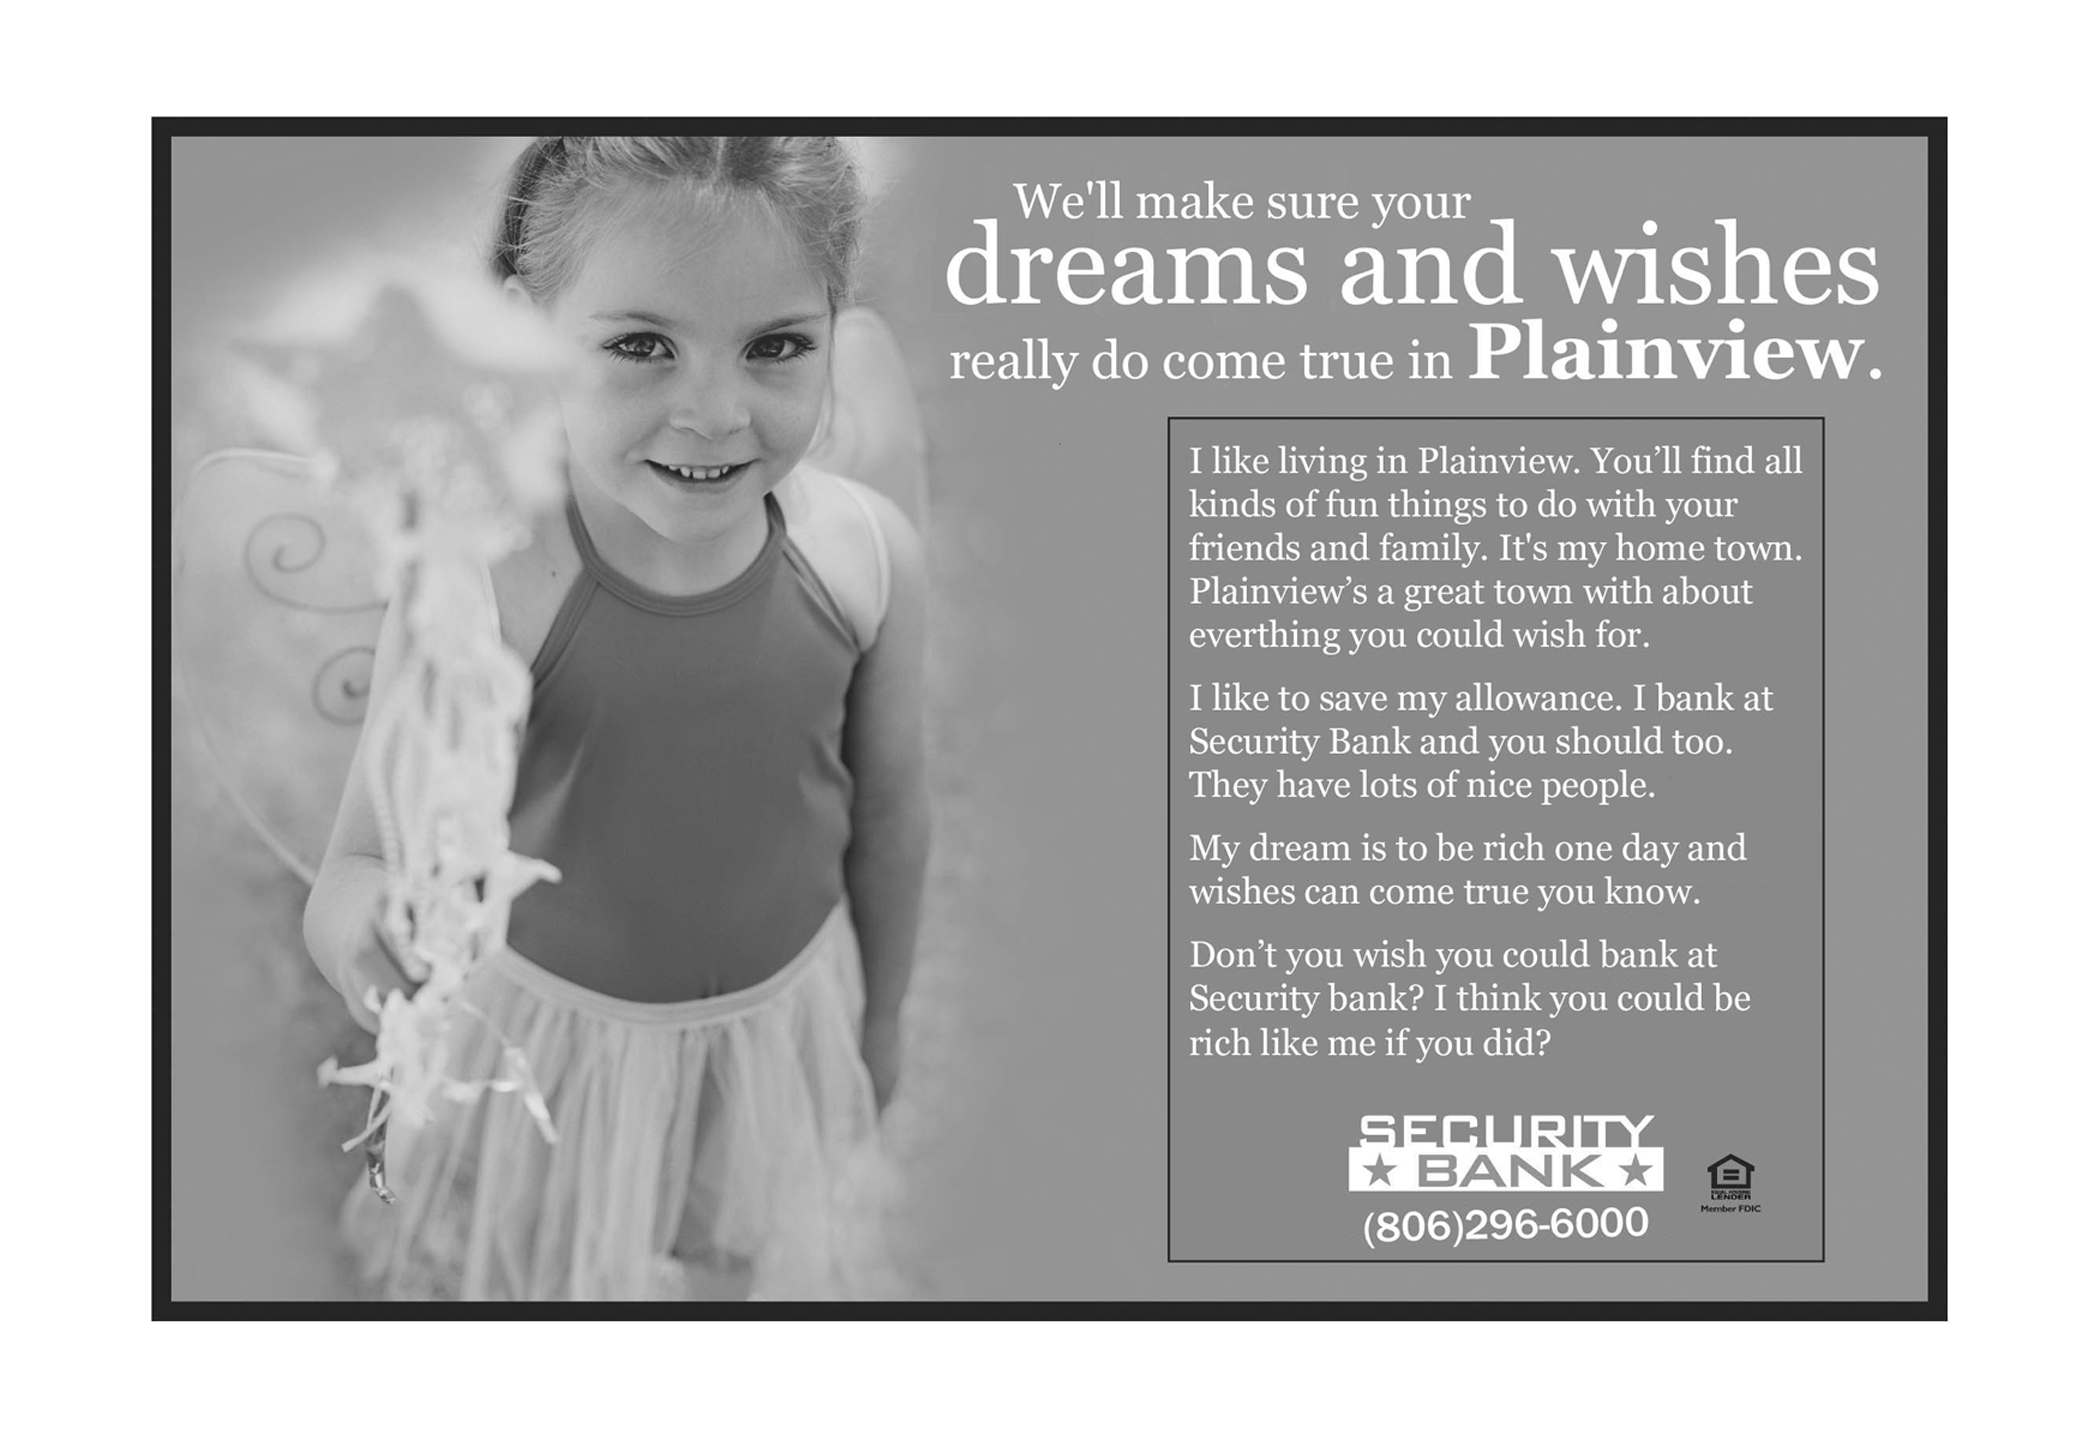 Dreams and Wishes Security Bank Plainview.jpg